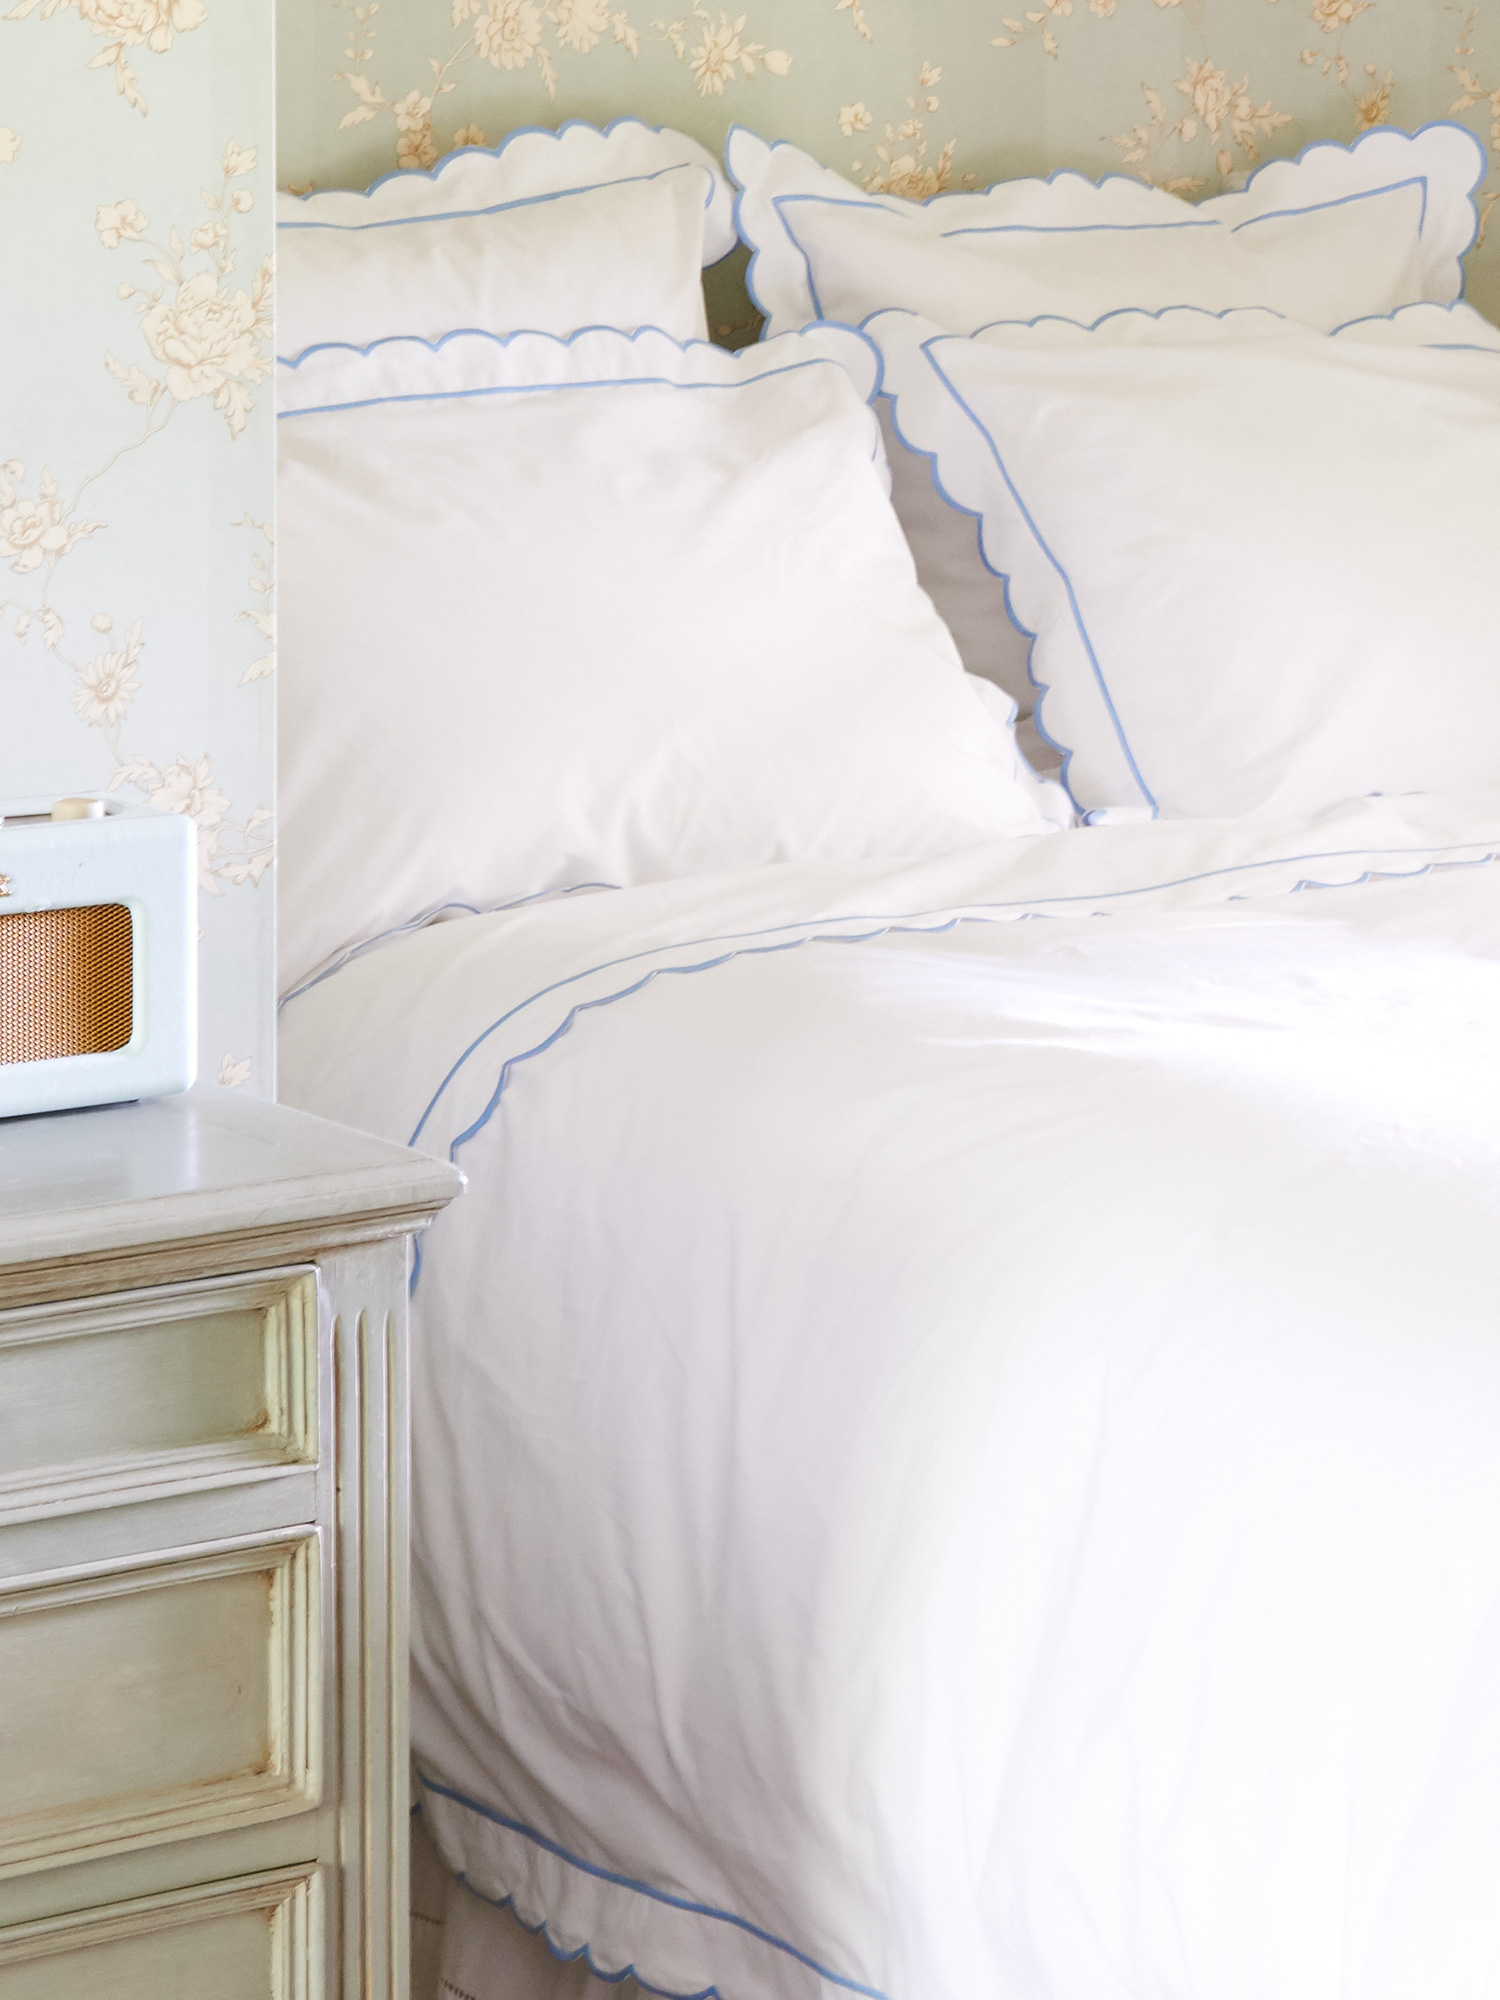 inuse ebay peri chenille scallop duvet cover scalloped itm home by